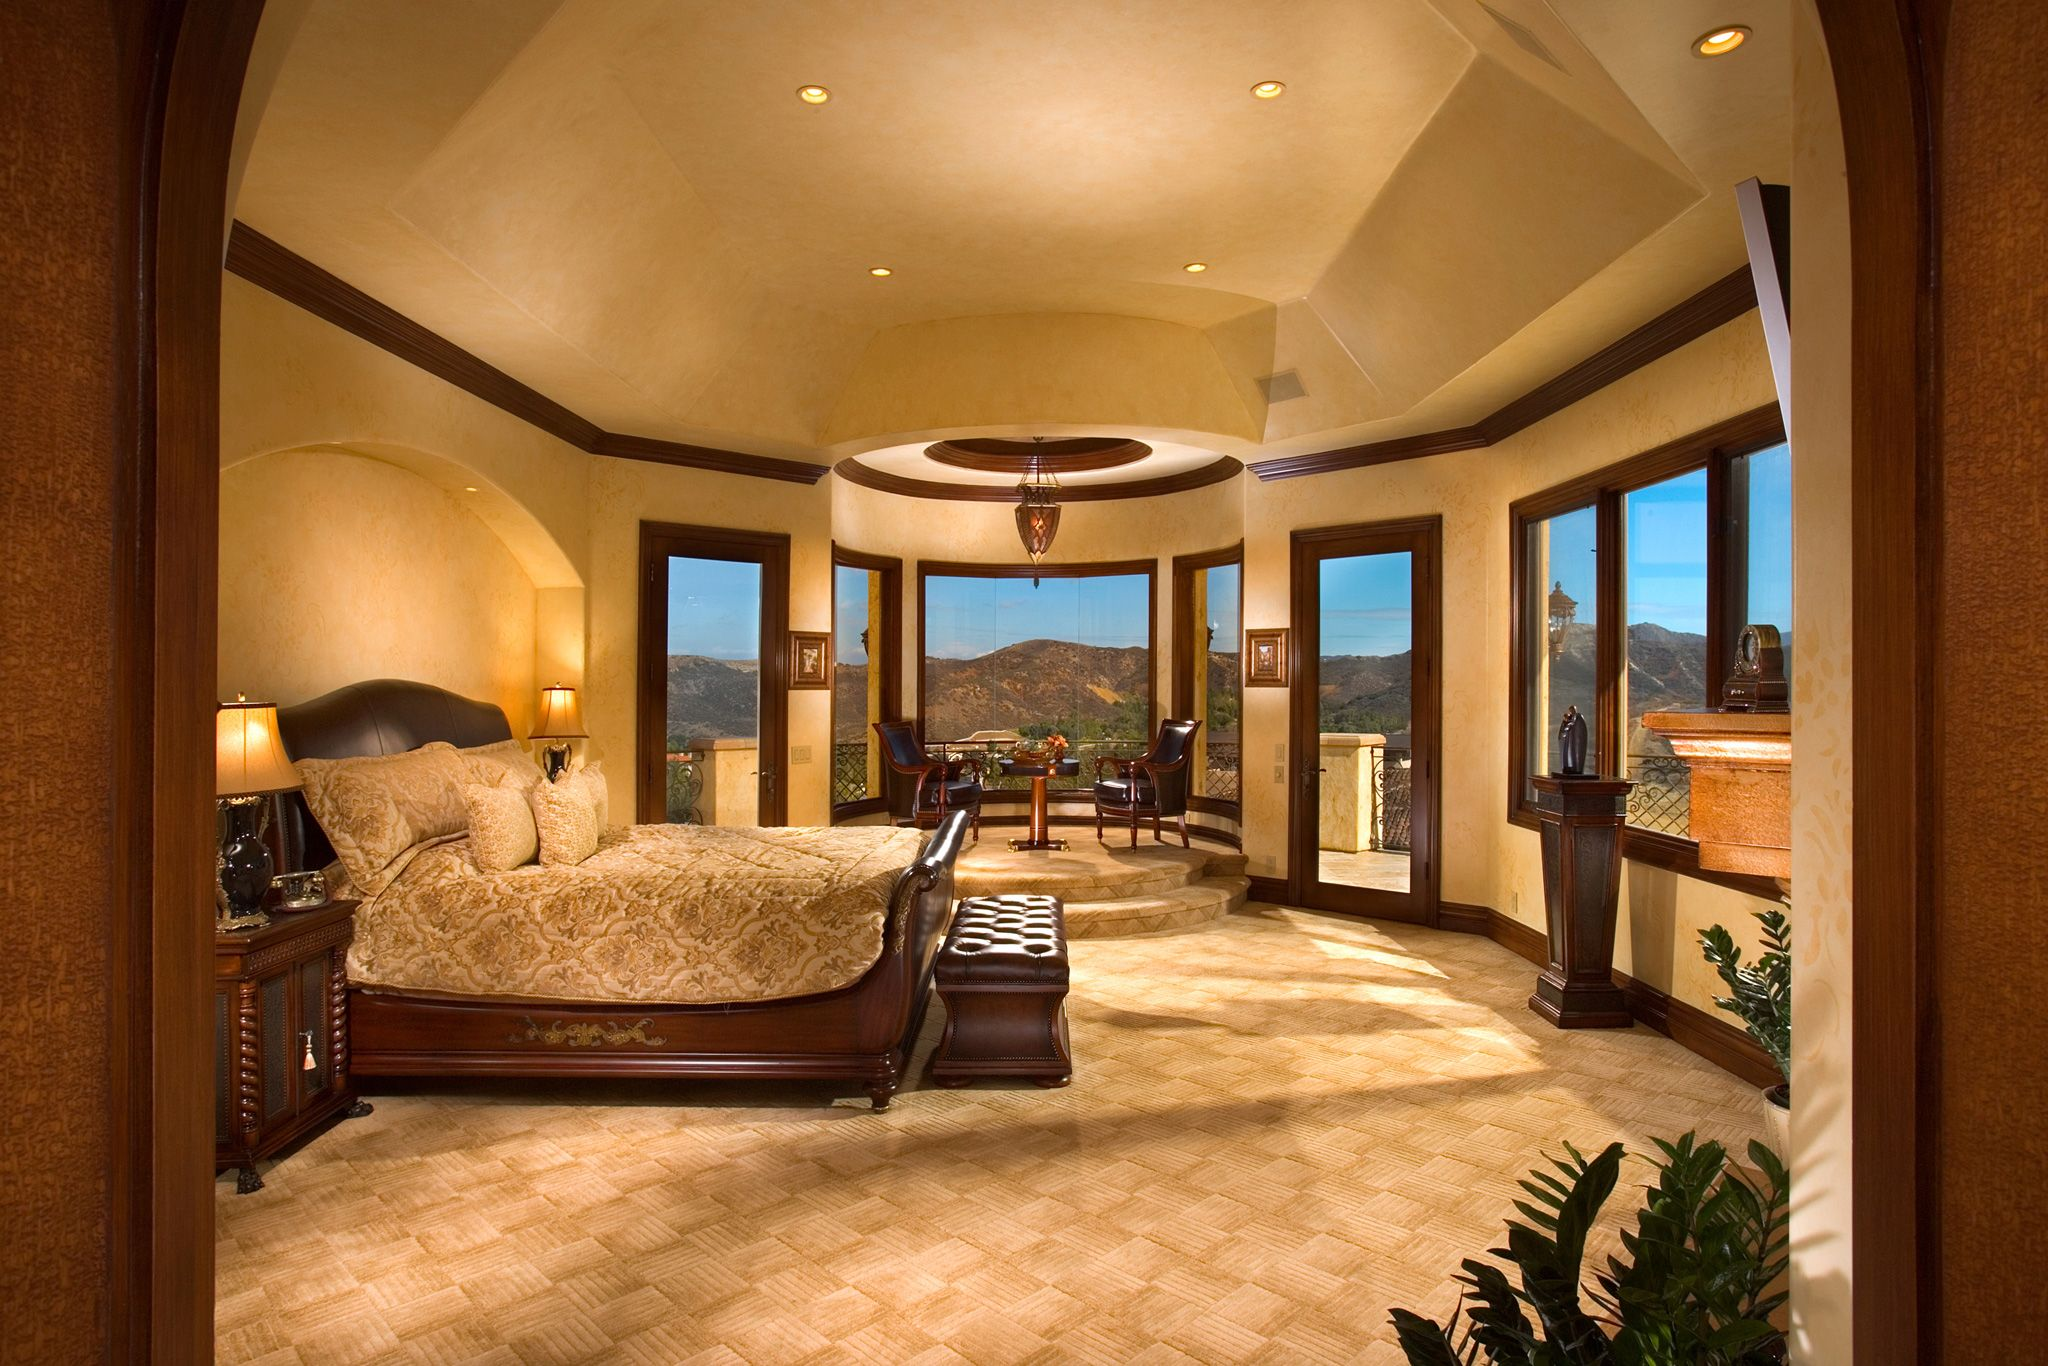 21 incredible master bedrooms design ideas luxury master for Master bedroom designs images